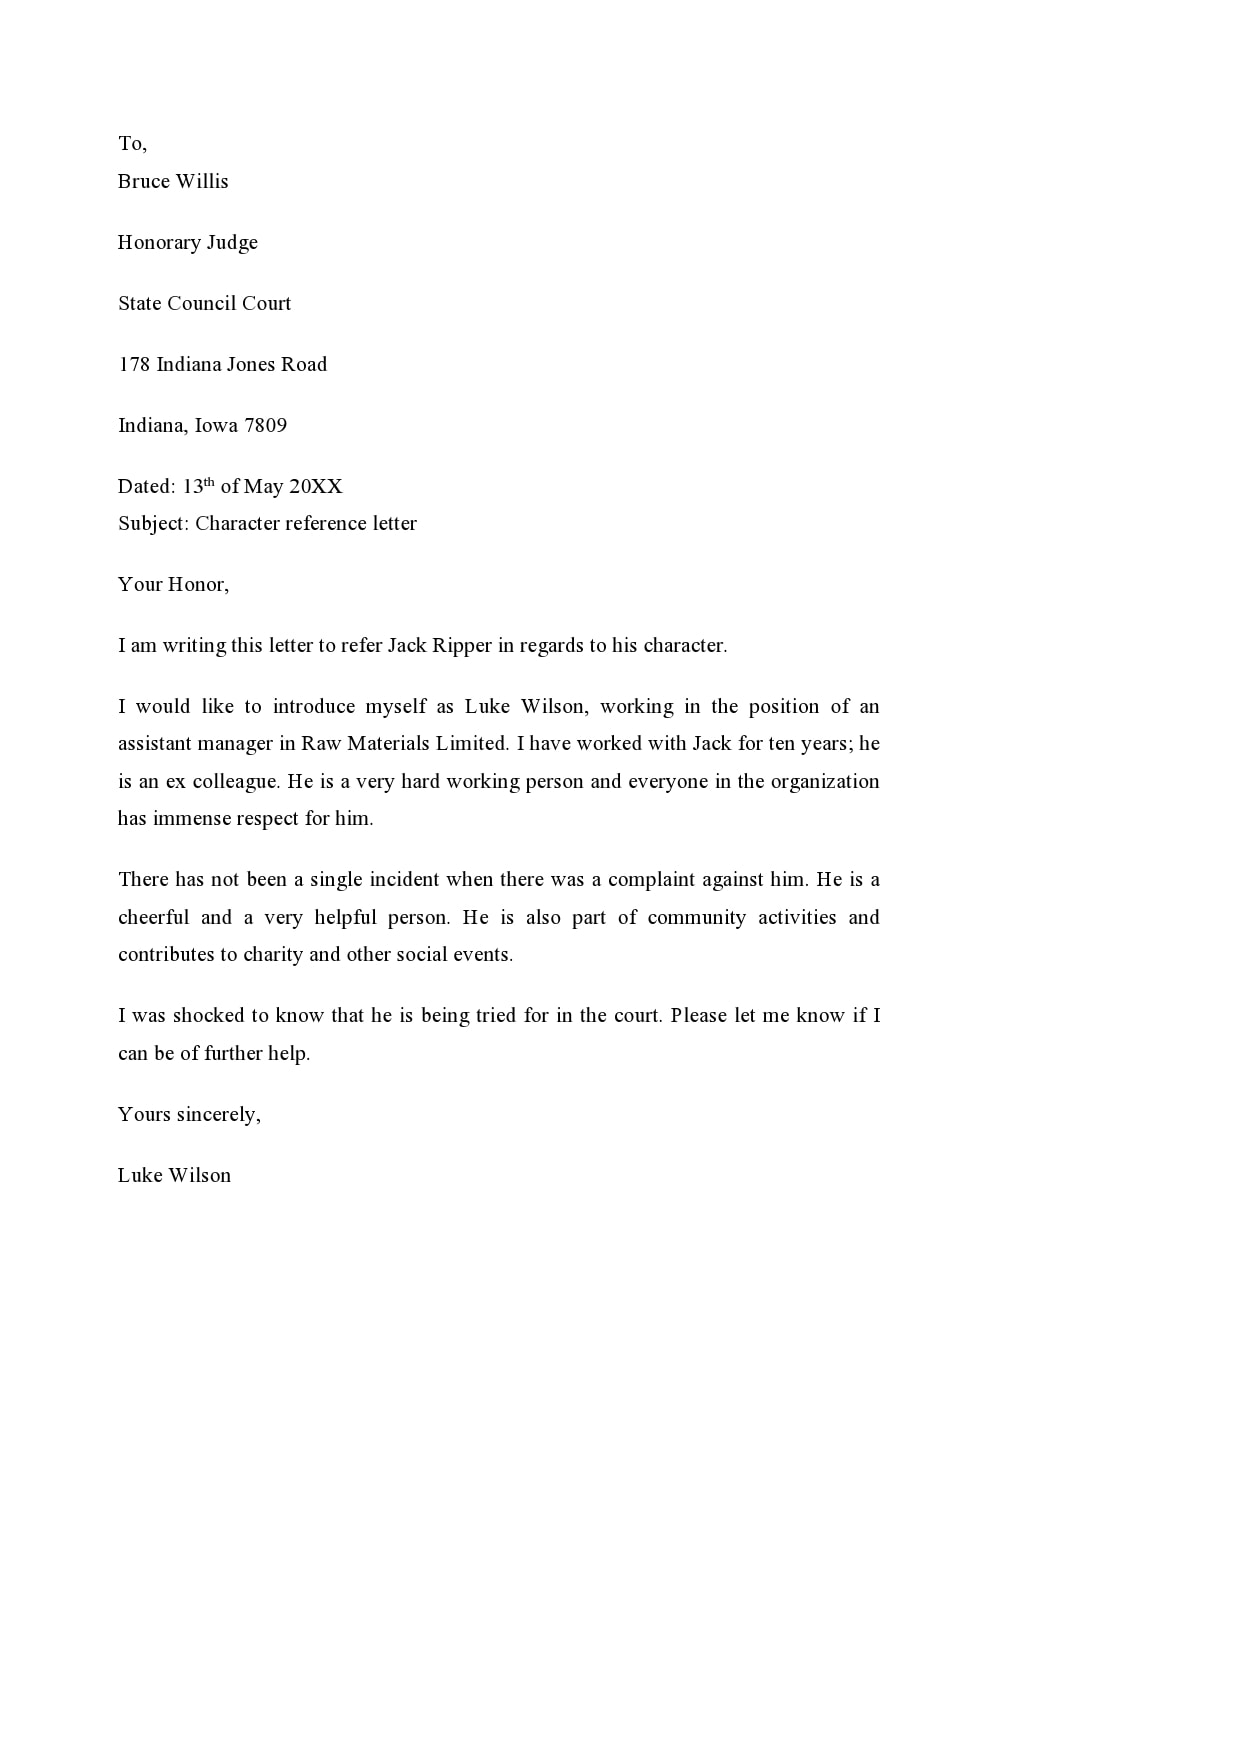 Sample Character Reference Letter For Immigration Court from templatearchive.com